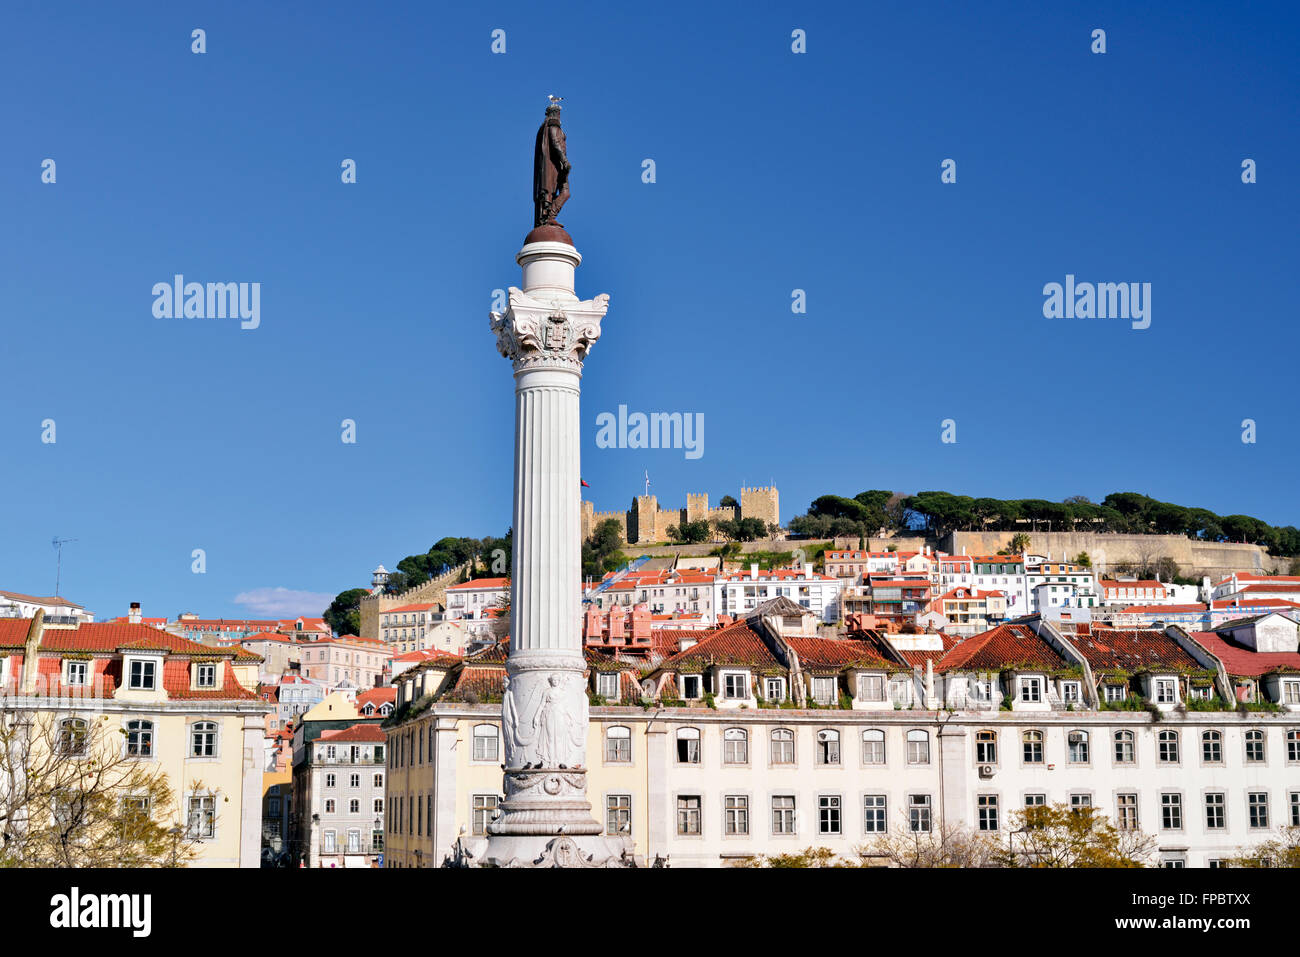 Portugal, Lisbon: Column and statue of Dom Pedro IV at Rossio Square with castle in the background - Stock Image